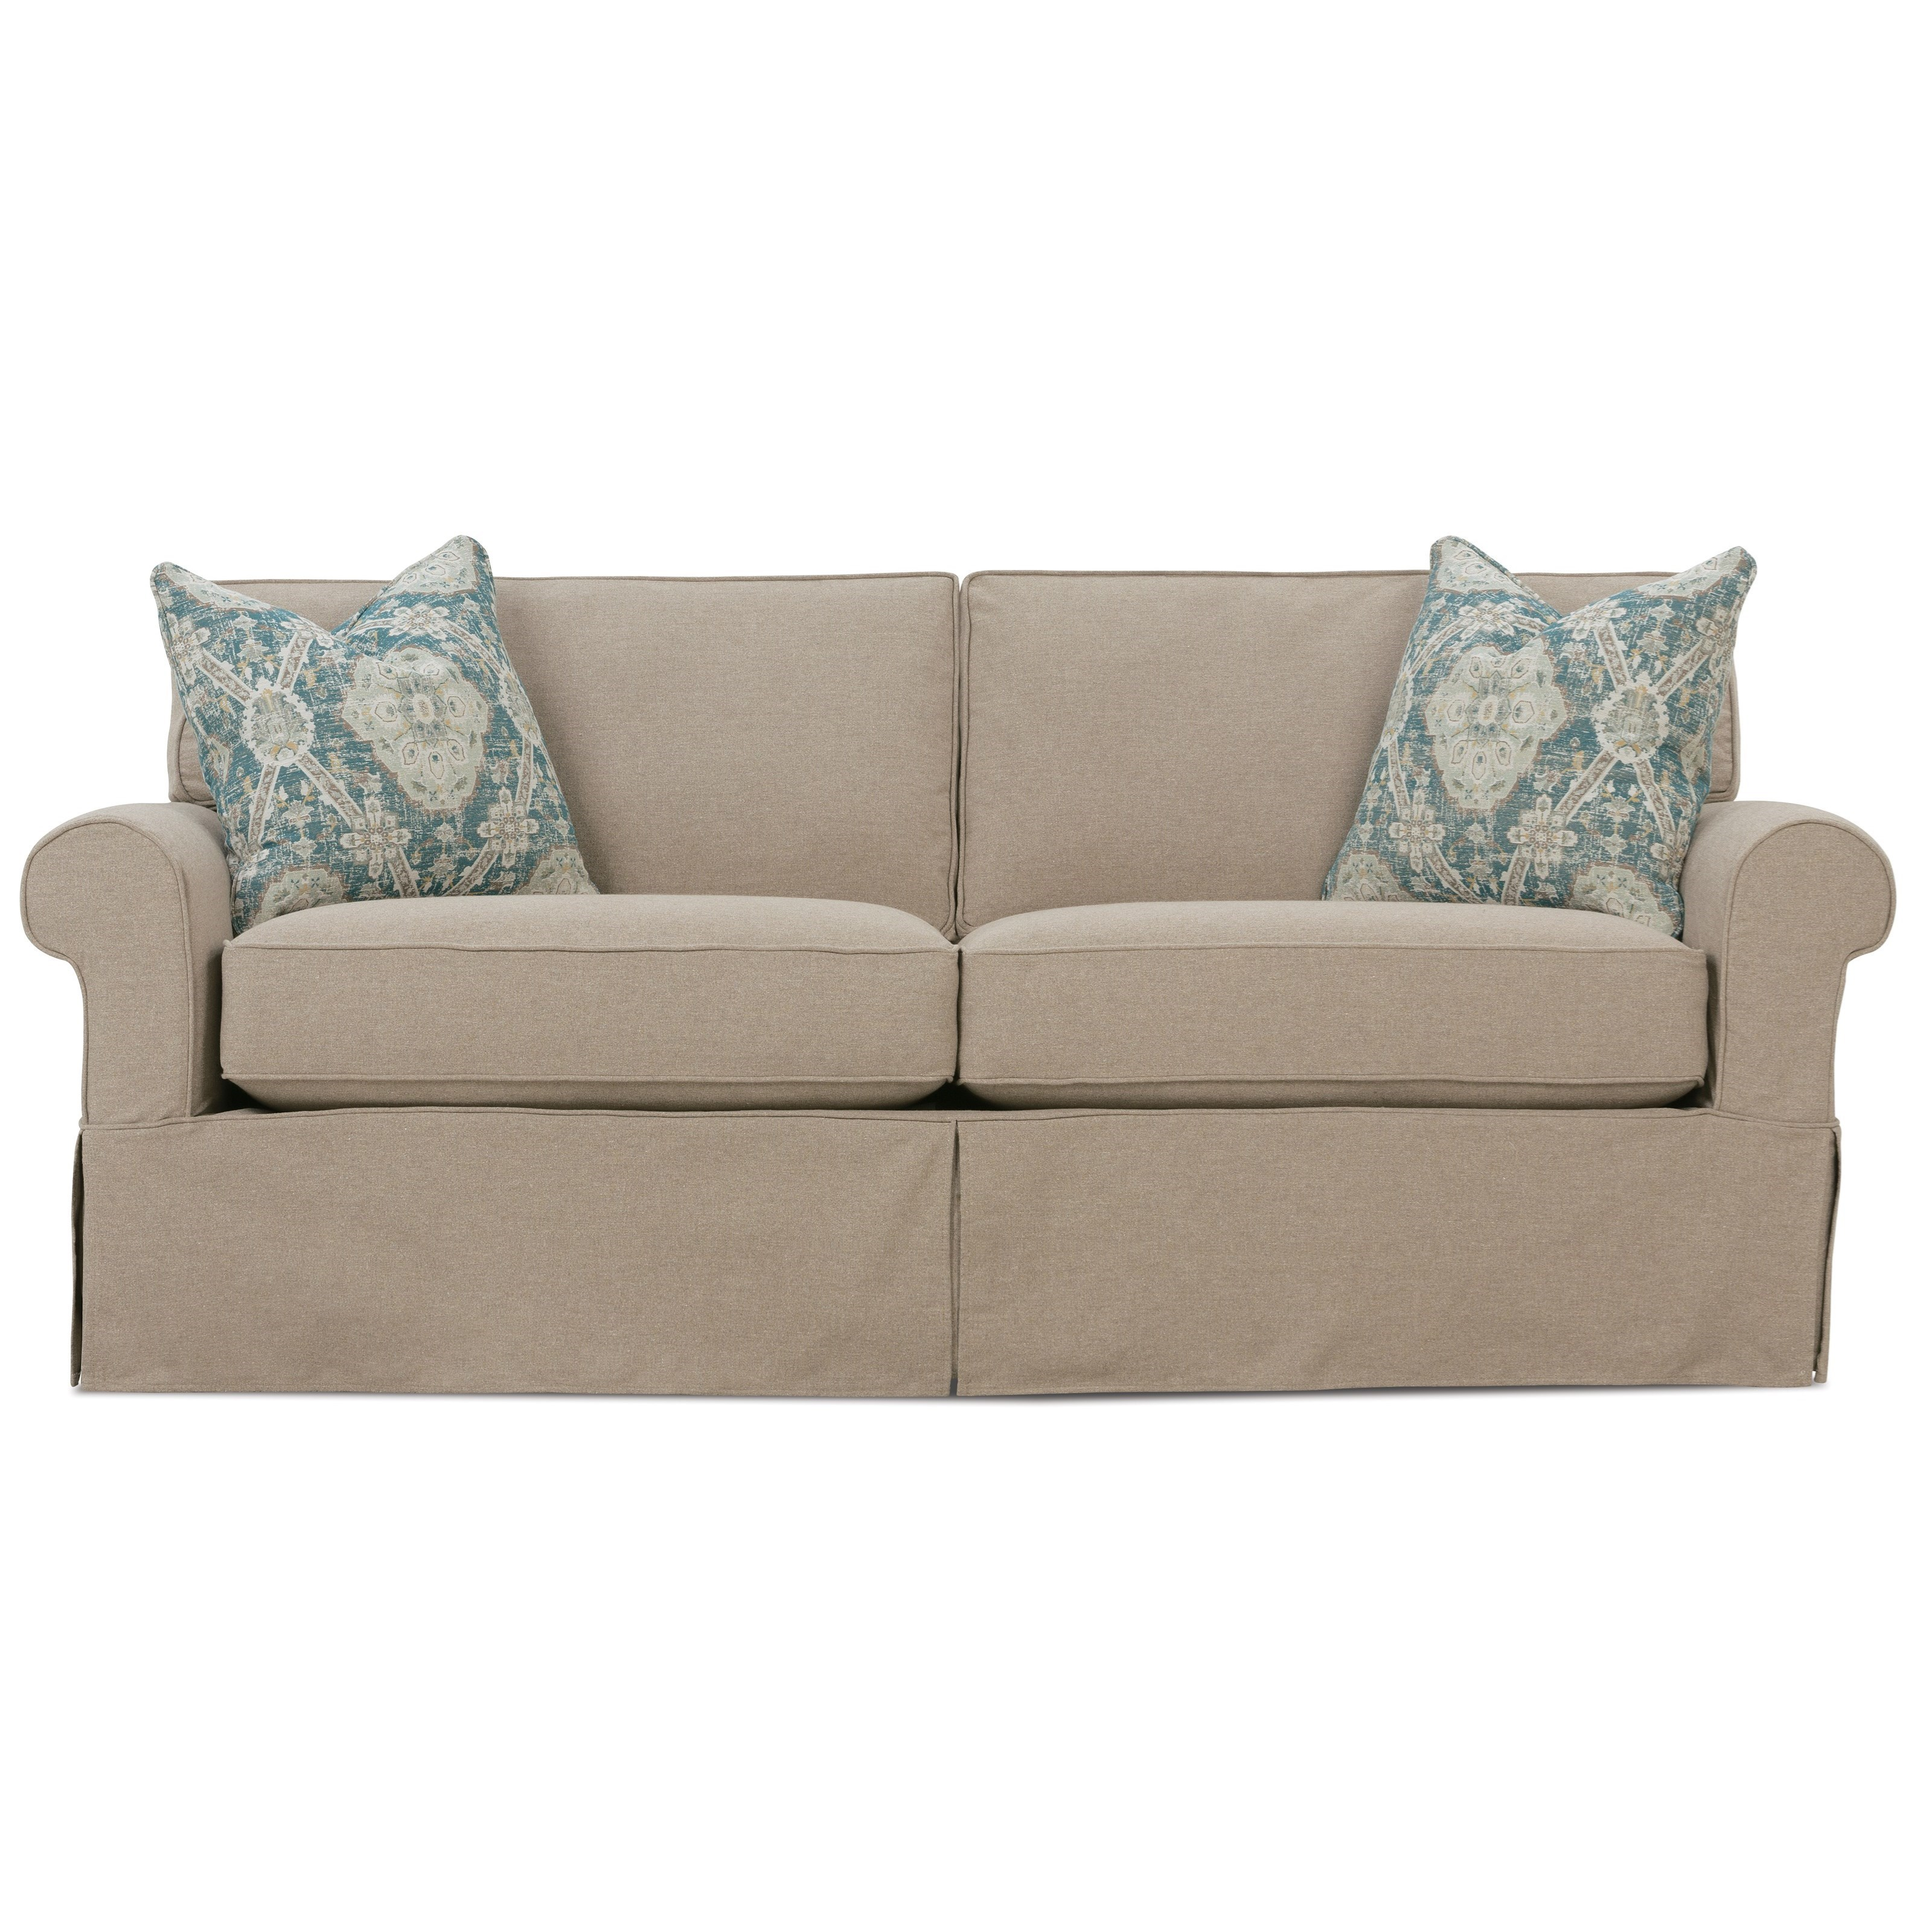 Rowe nantucket a910r 000 casual 2 seat slipcover sofa for Rowe furniture slipcovers nantucket